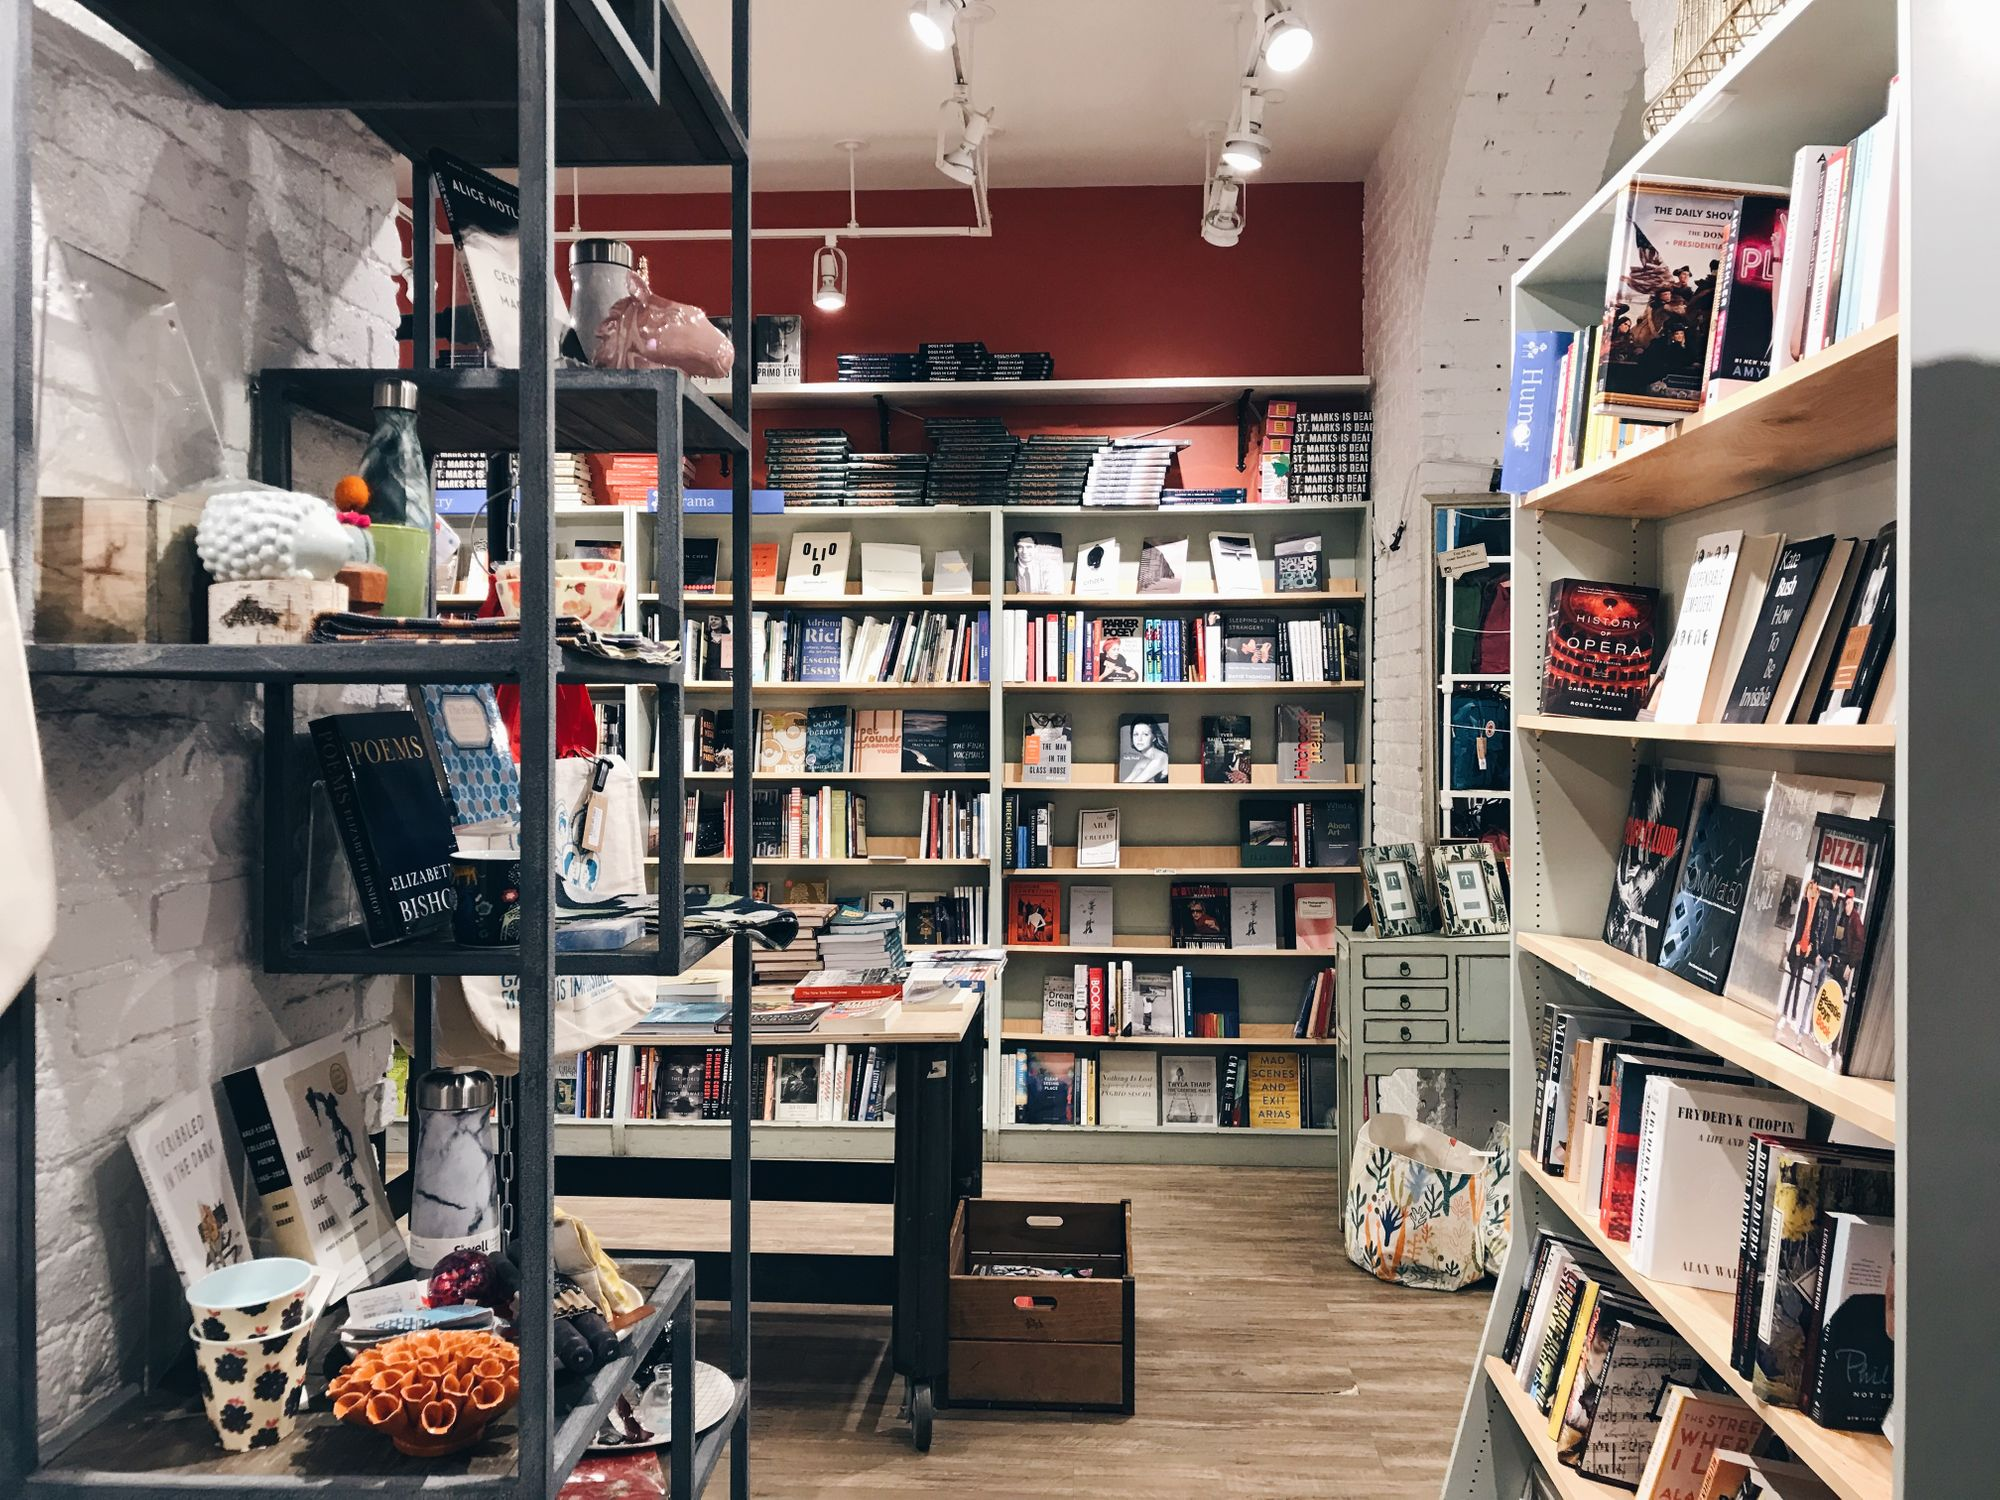 A Guide To The Best Independent Bookstores In NYC